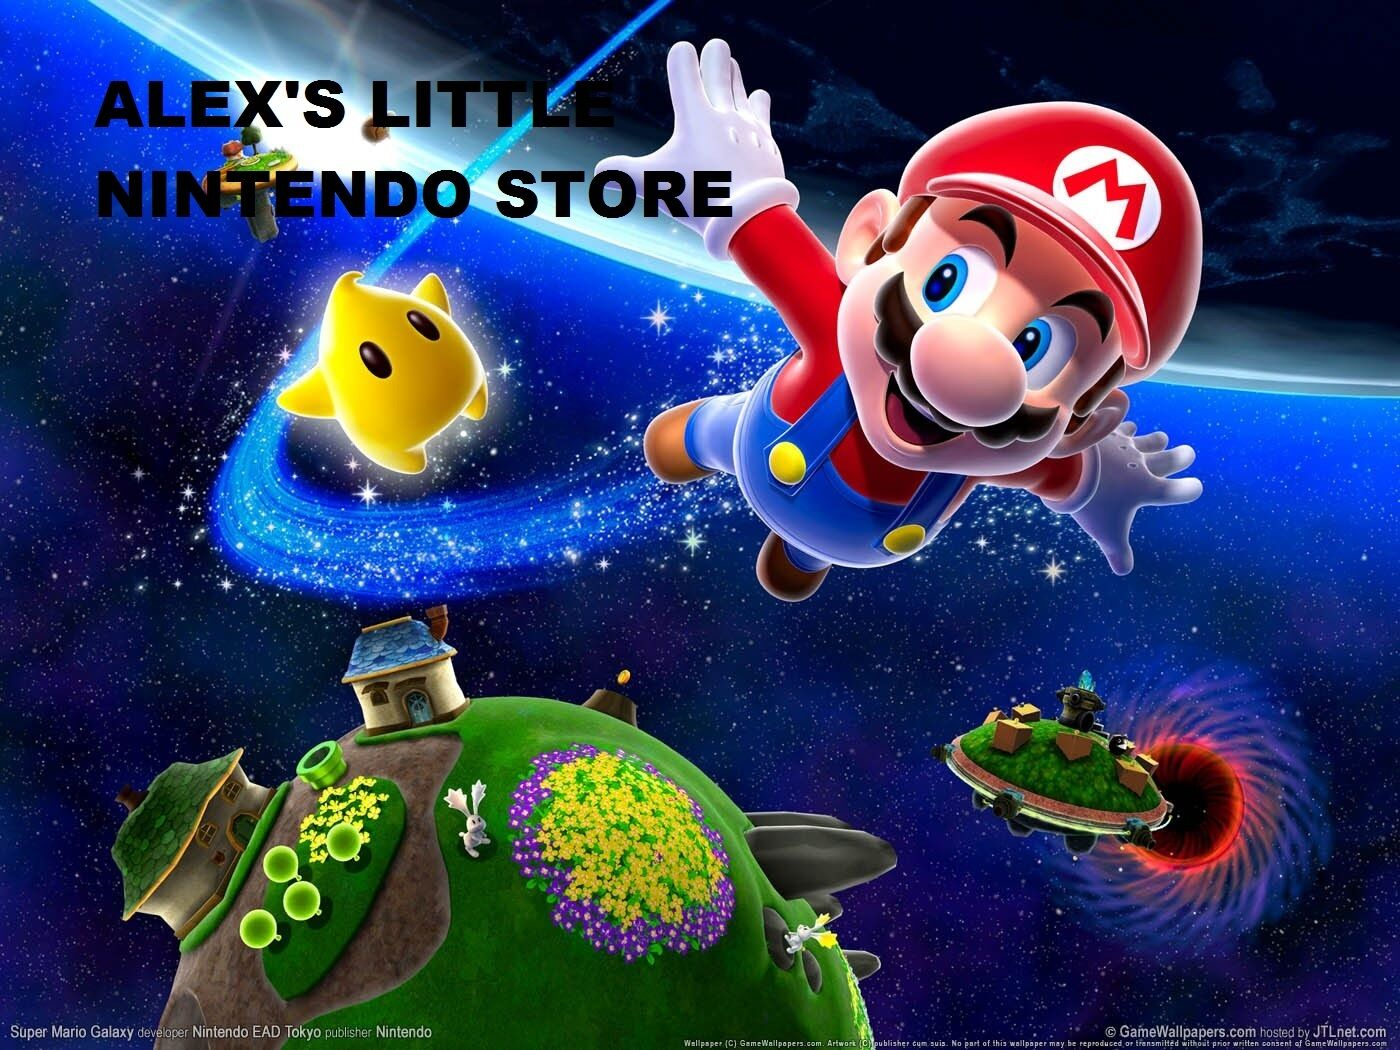 ALEX'S LITTLE NINTENDO STORE